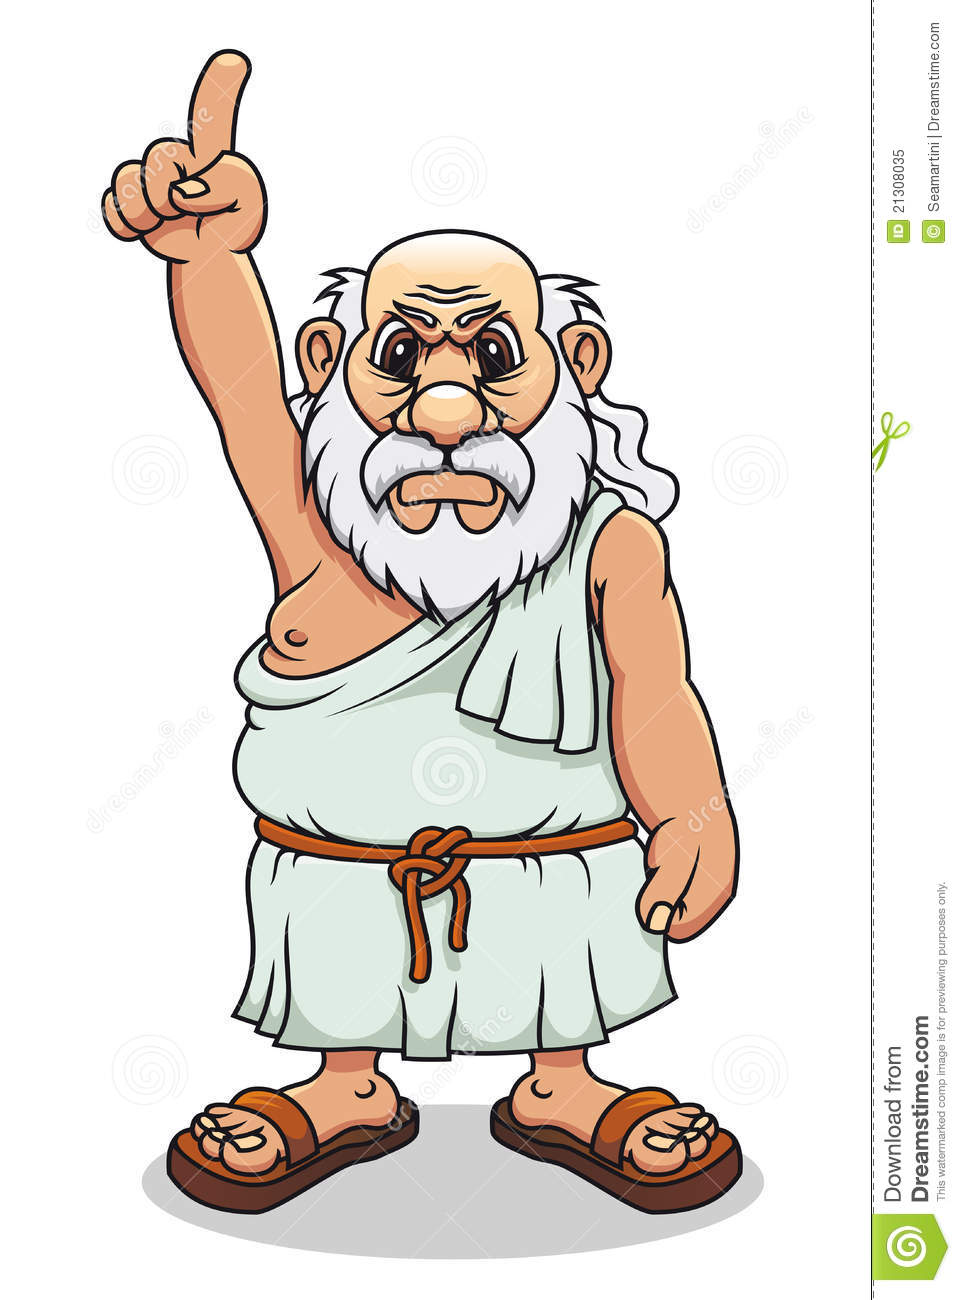 Ancient Greek Man Royalty Free Stock Photo - Image: 21308035